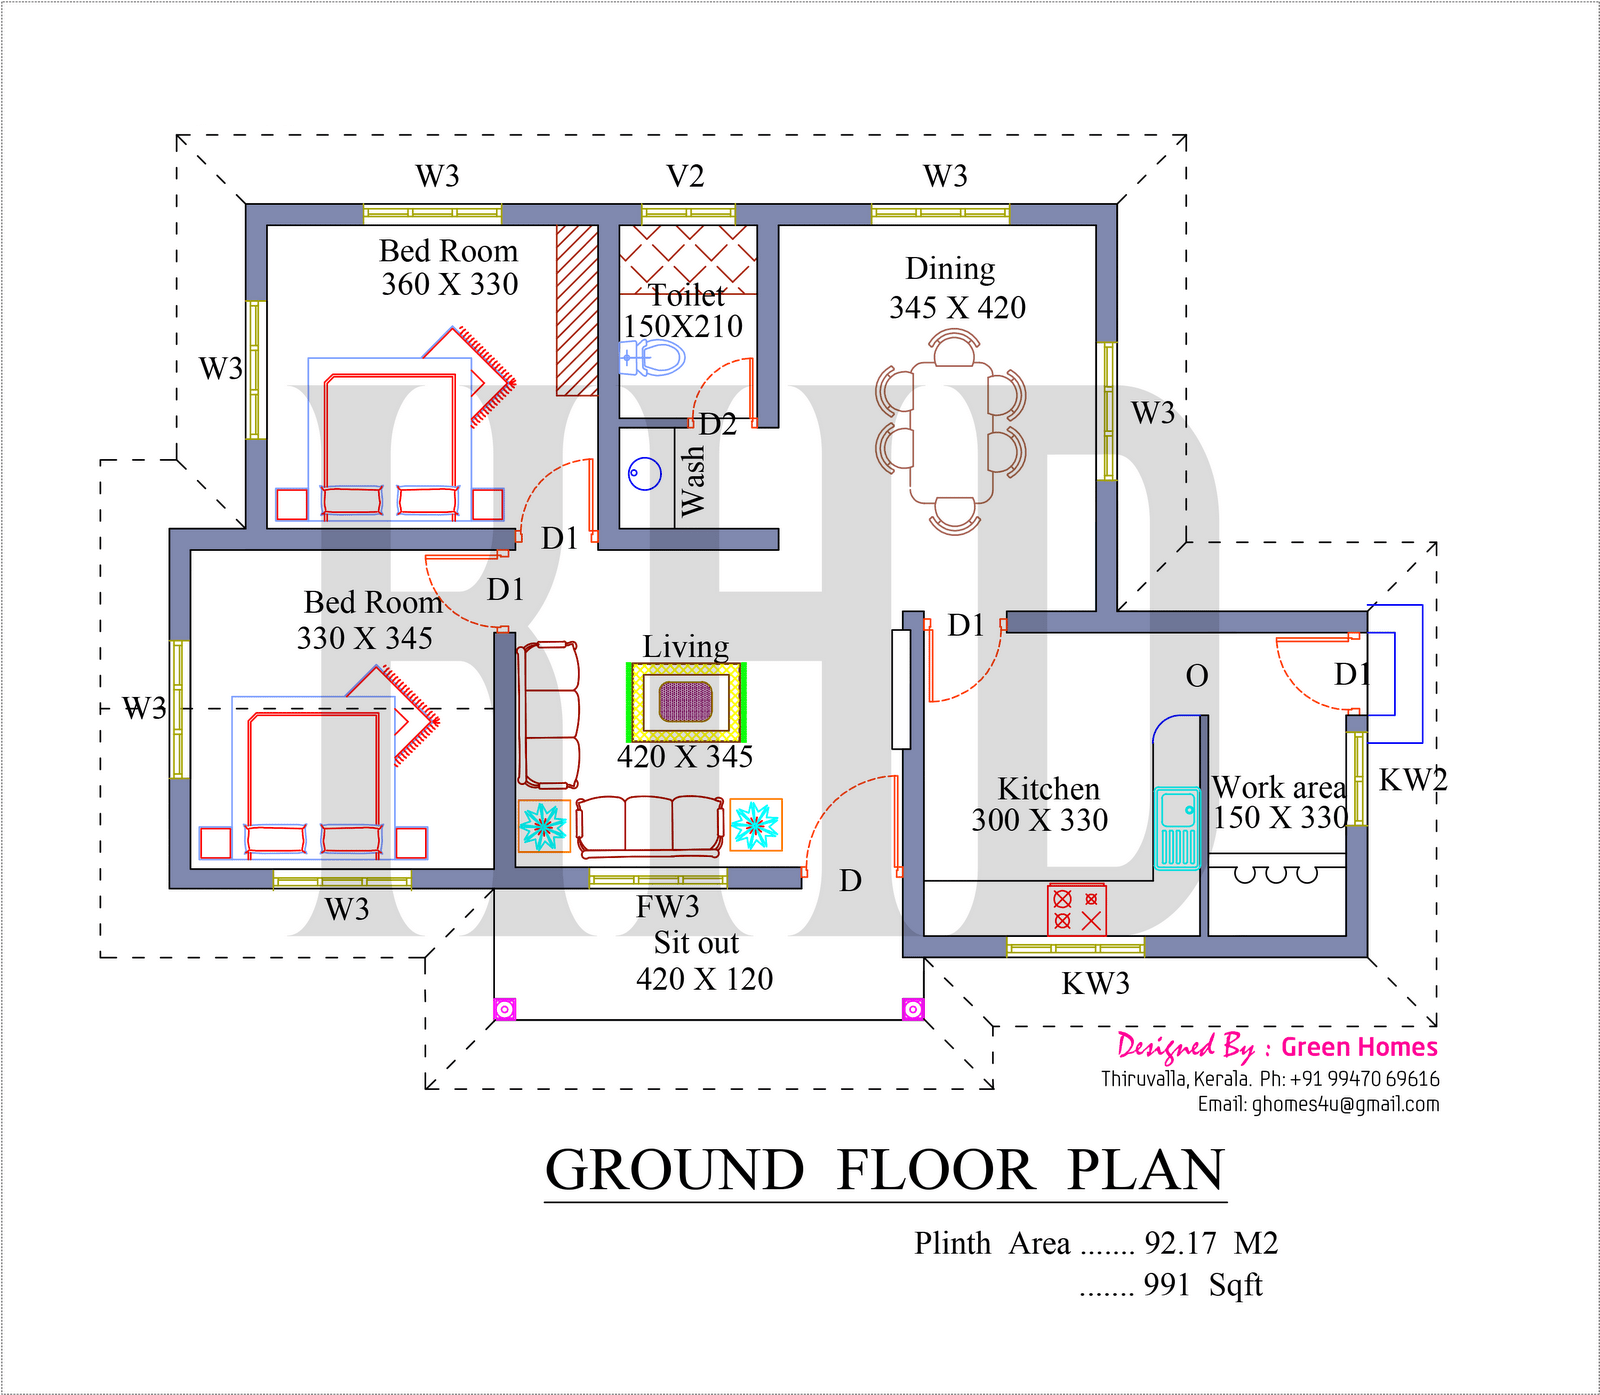 Low cost house in kerala with plan photos 991 sq ft khp House layout plan